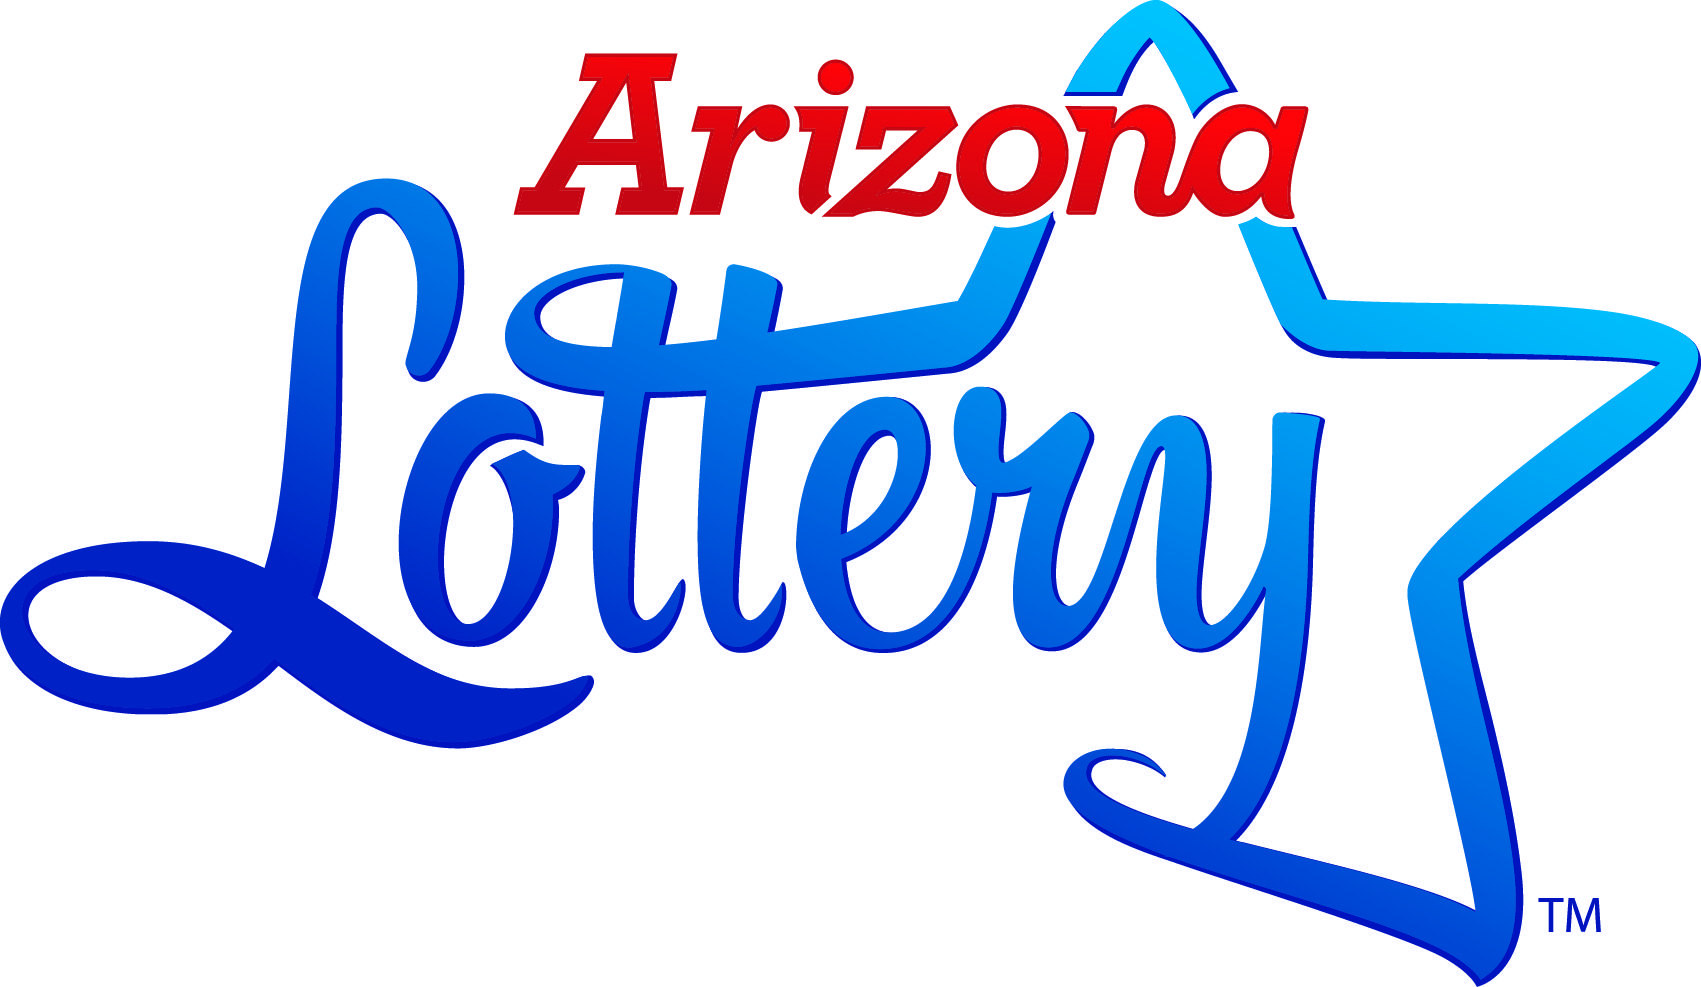 Big thank you to the Arizona Lottery for joining us as Bronze Community Friendships. Thank you for the support!